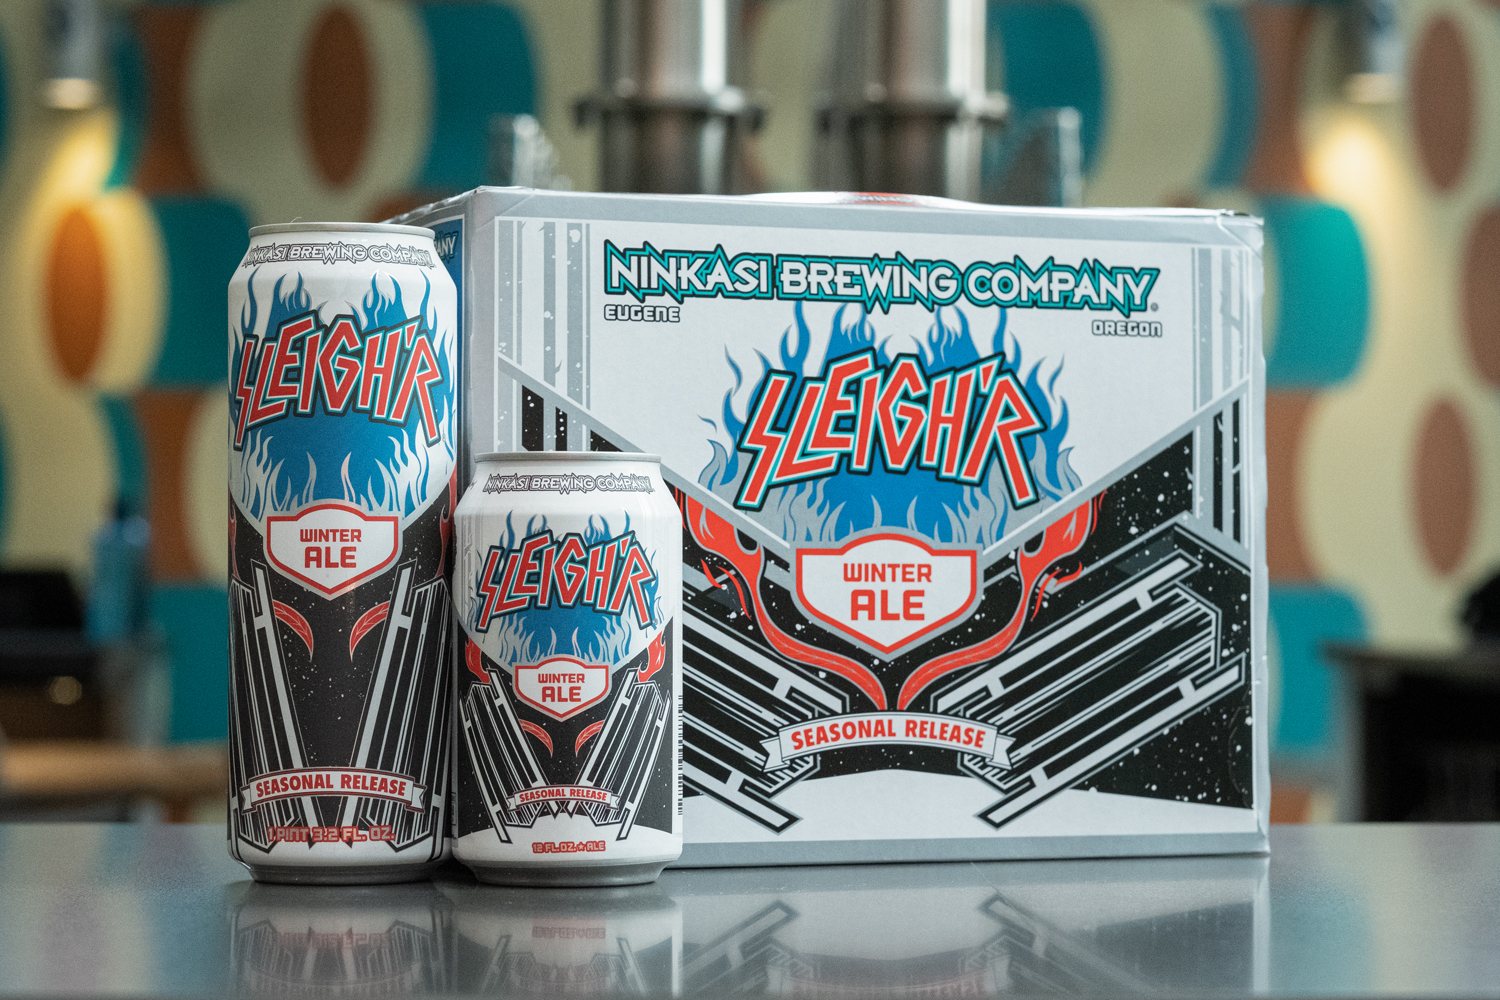 image of 2020 Sleighr courtesy of Ninkasi Brewing